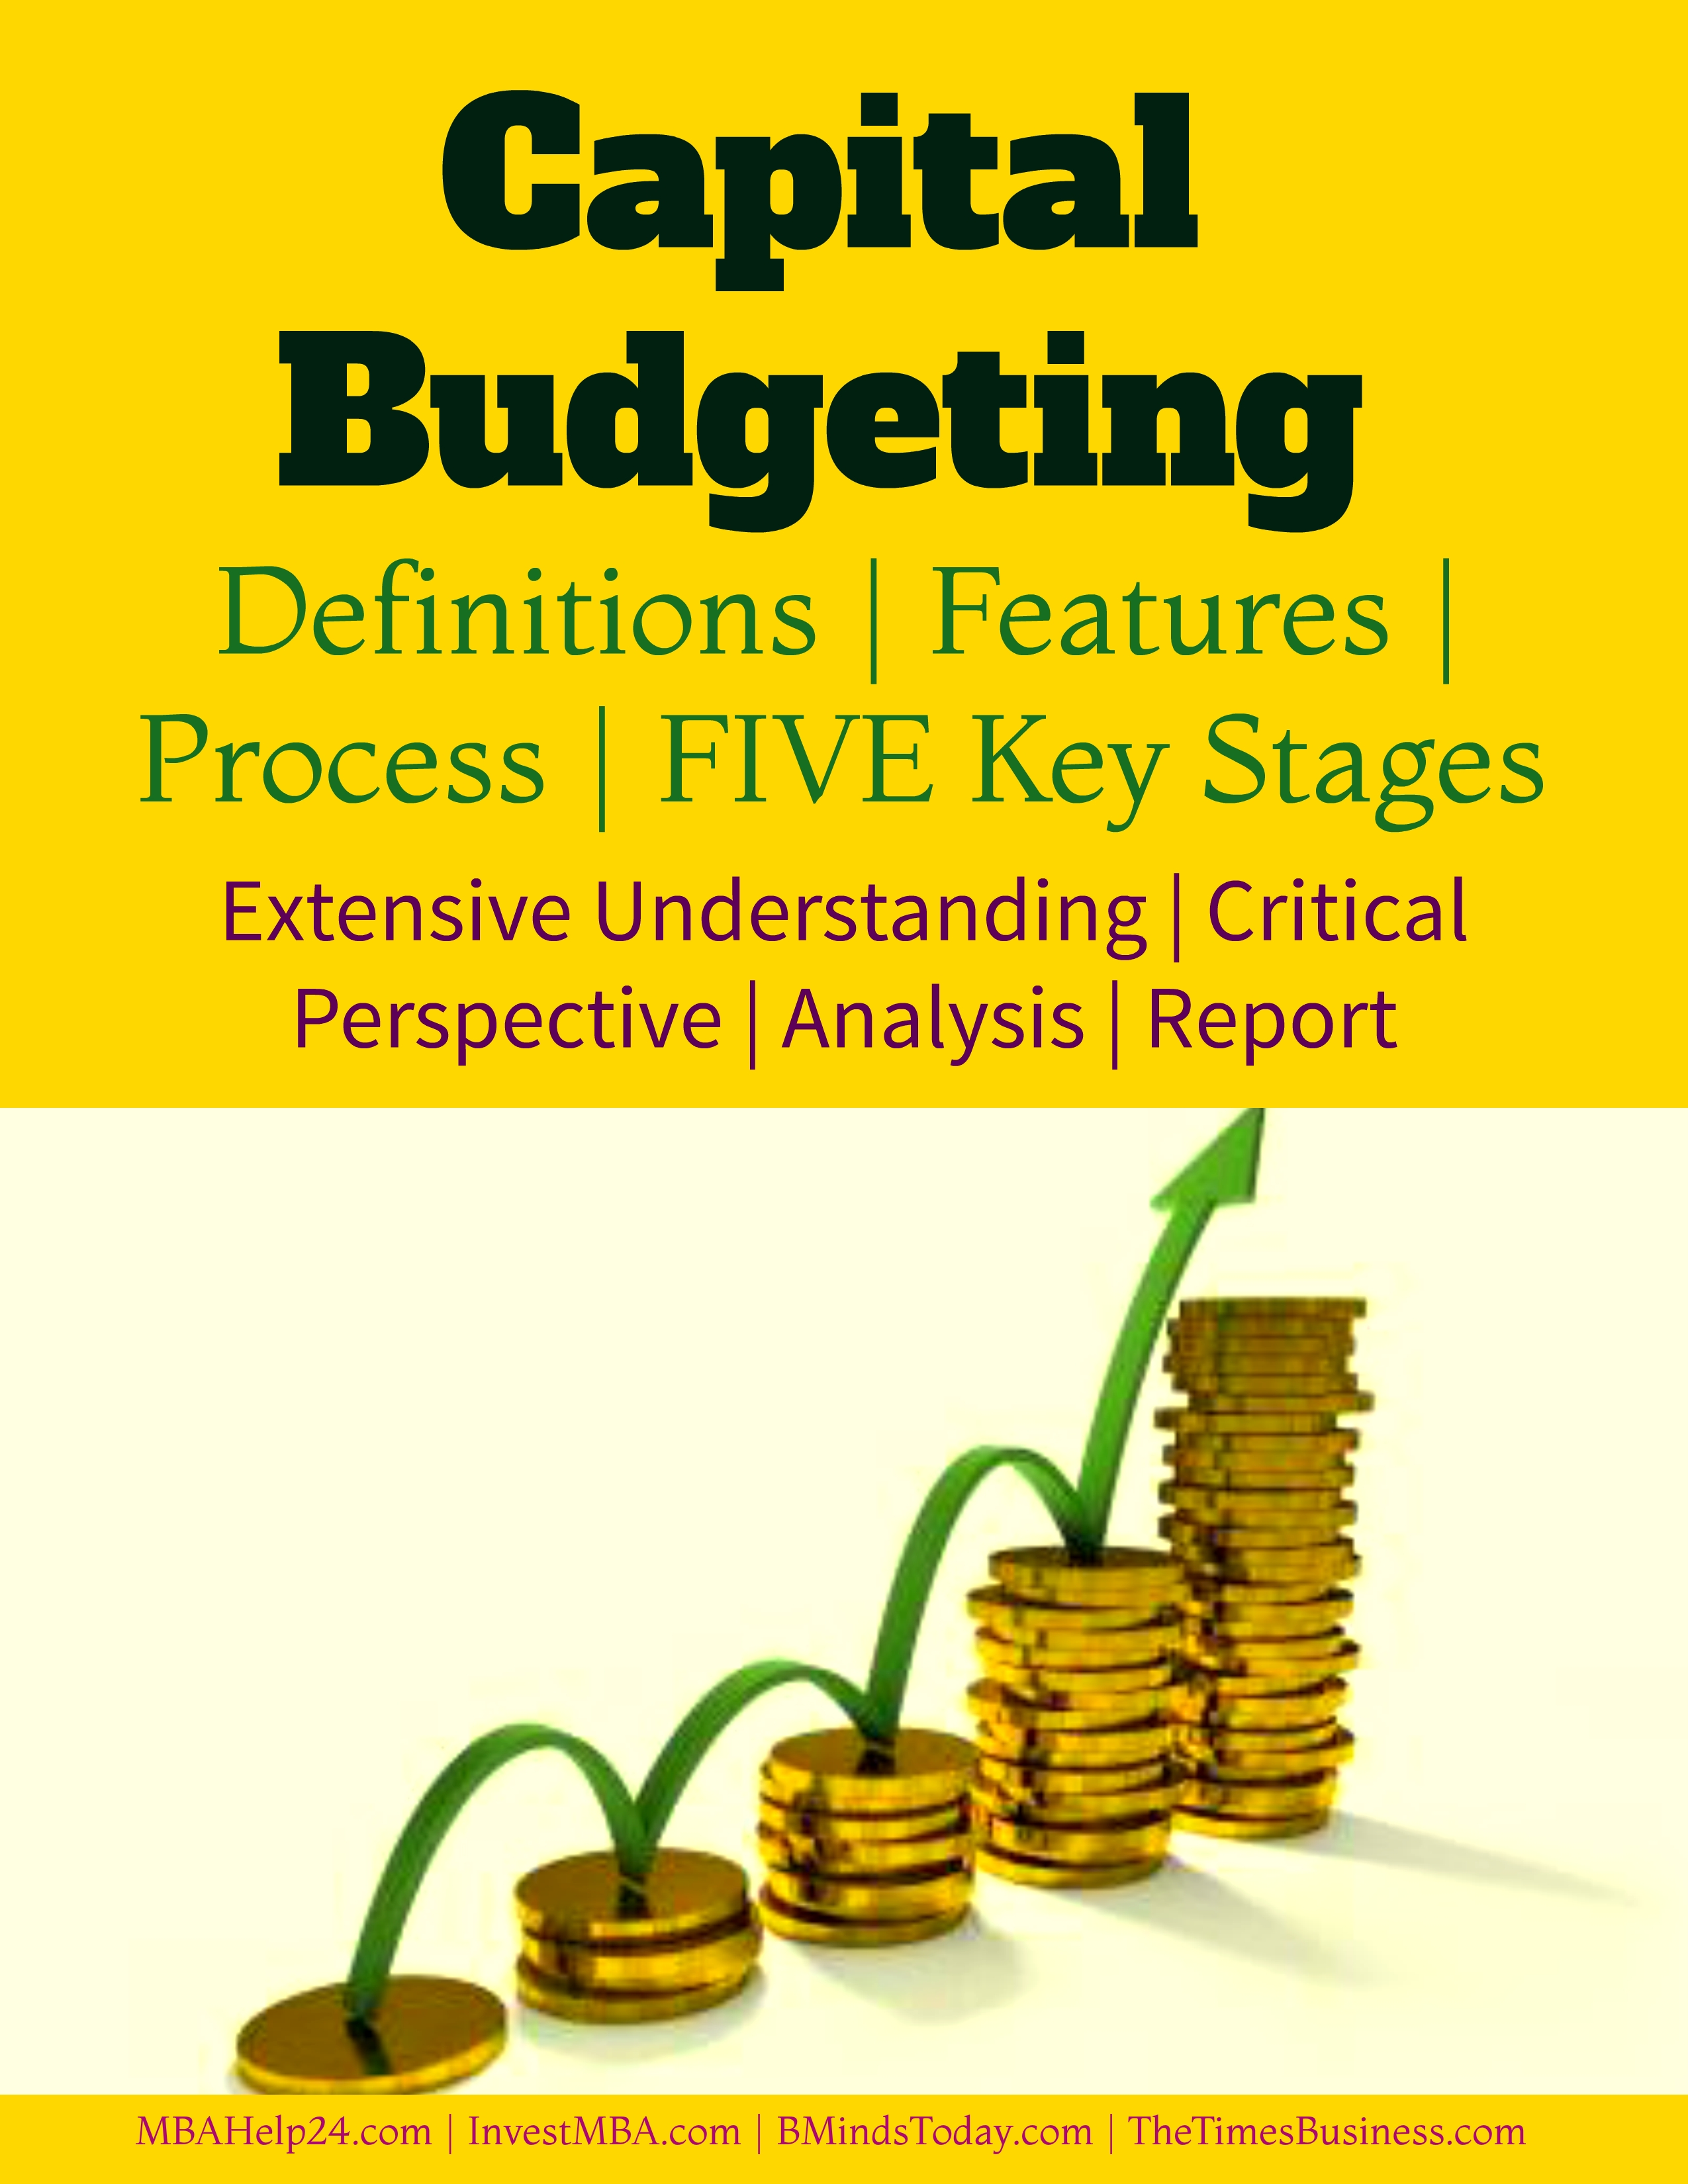 Capital budgeting- definitions, processes, stages and implications capital budgeting Capital Budgeting | Definitions | Features | Process | FIVE Stages Capital budgeting definitions processes stages and implications